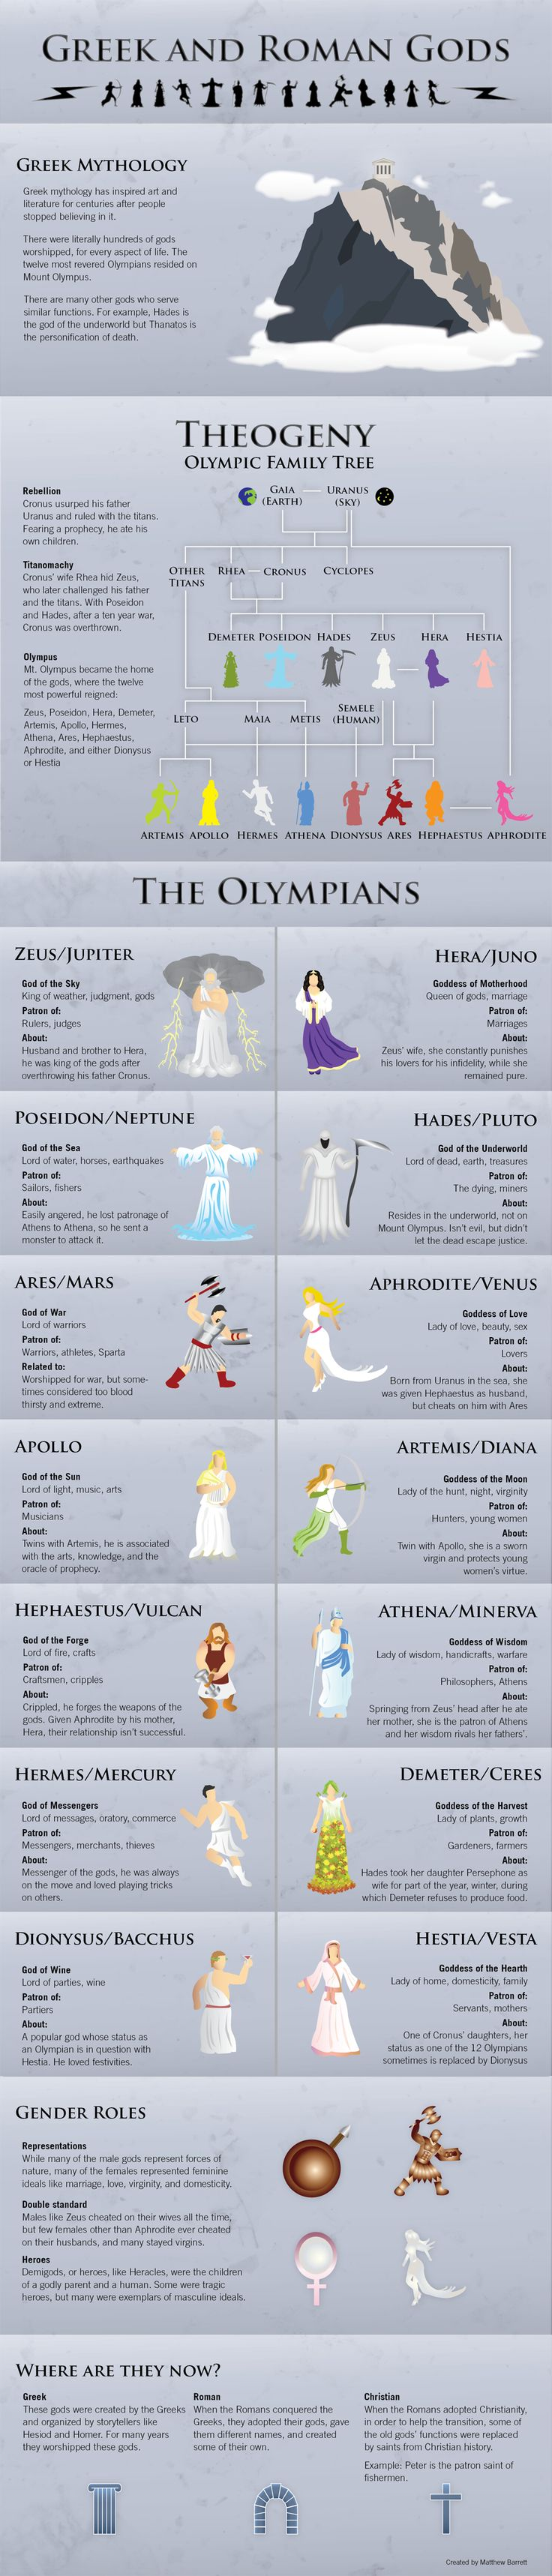 Greek & Roman Gods: